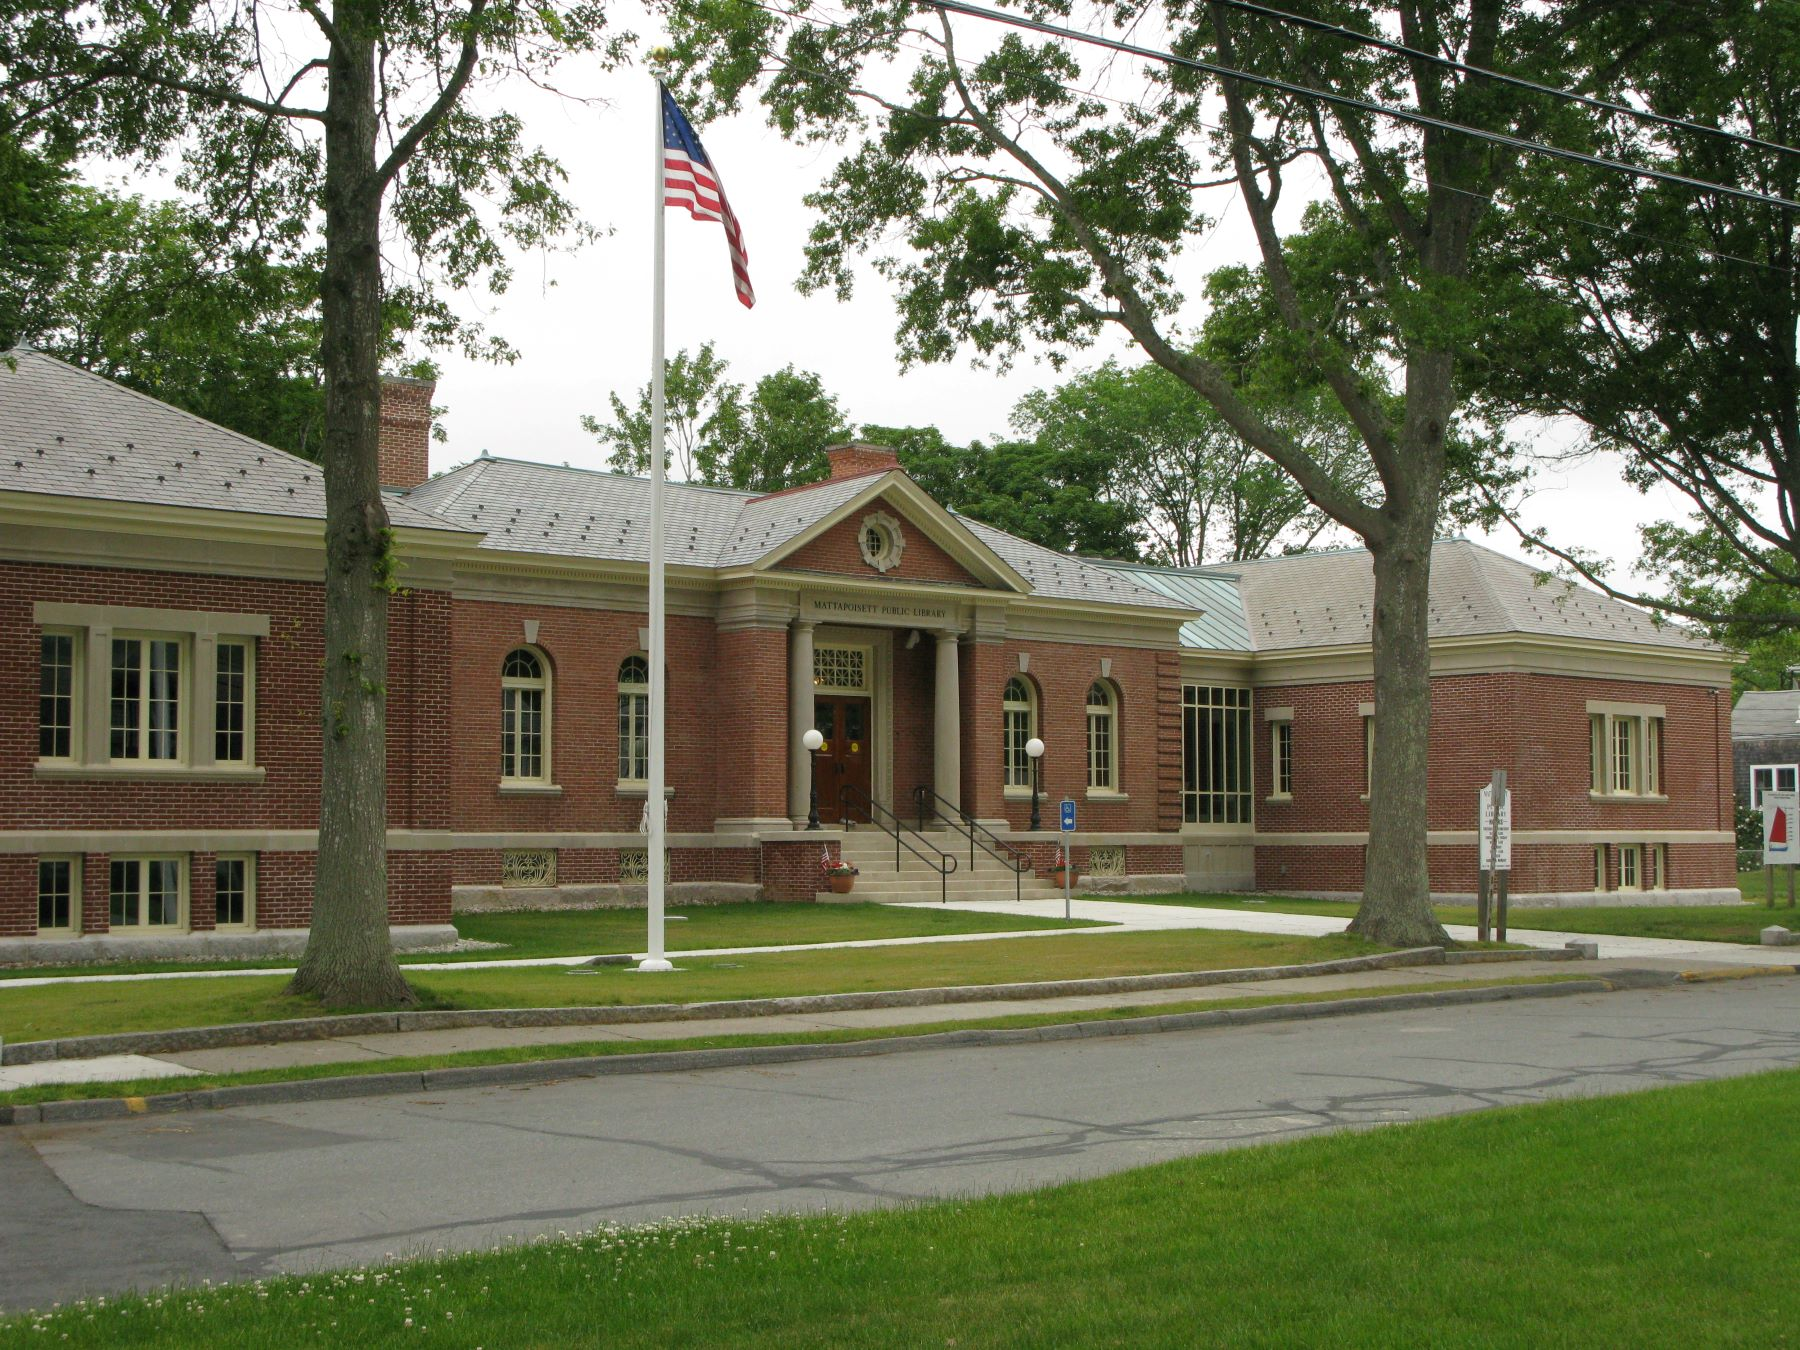 Photo of the Mattapoisett Free Public Library